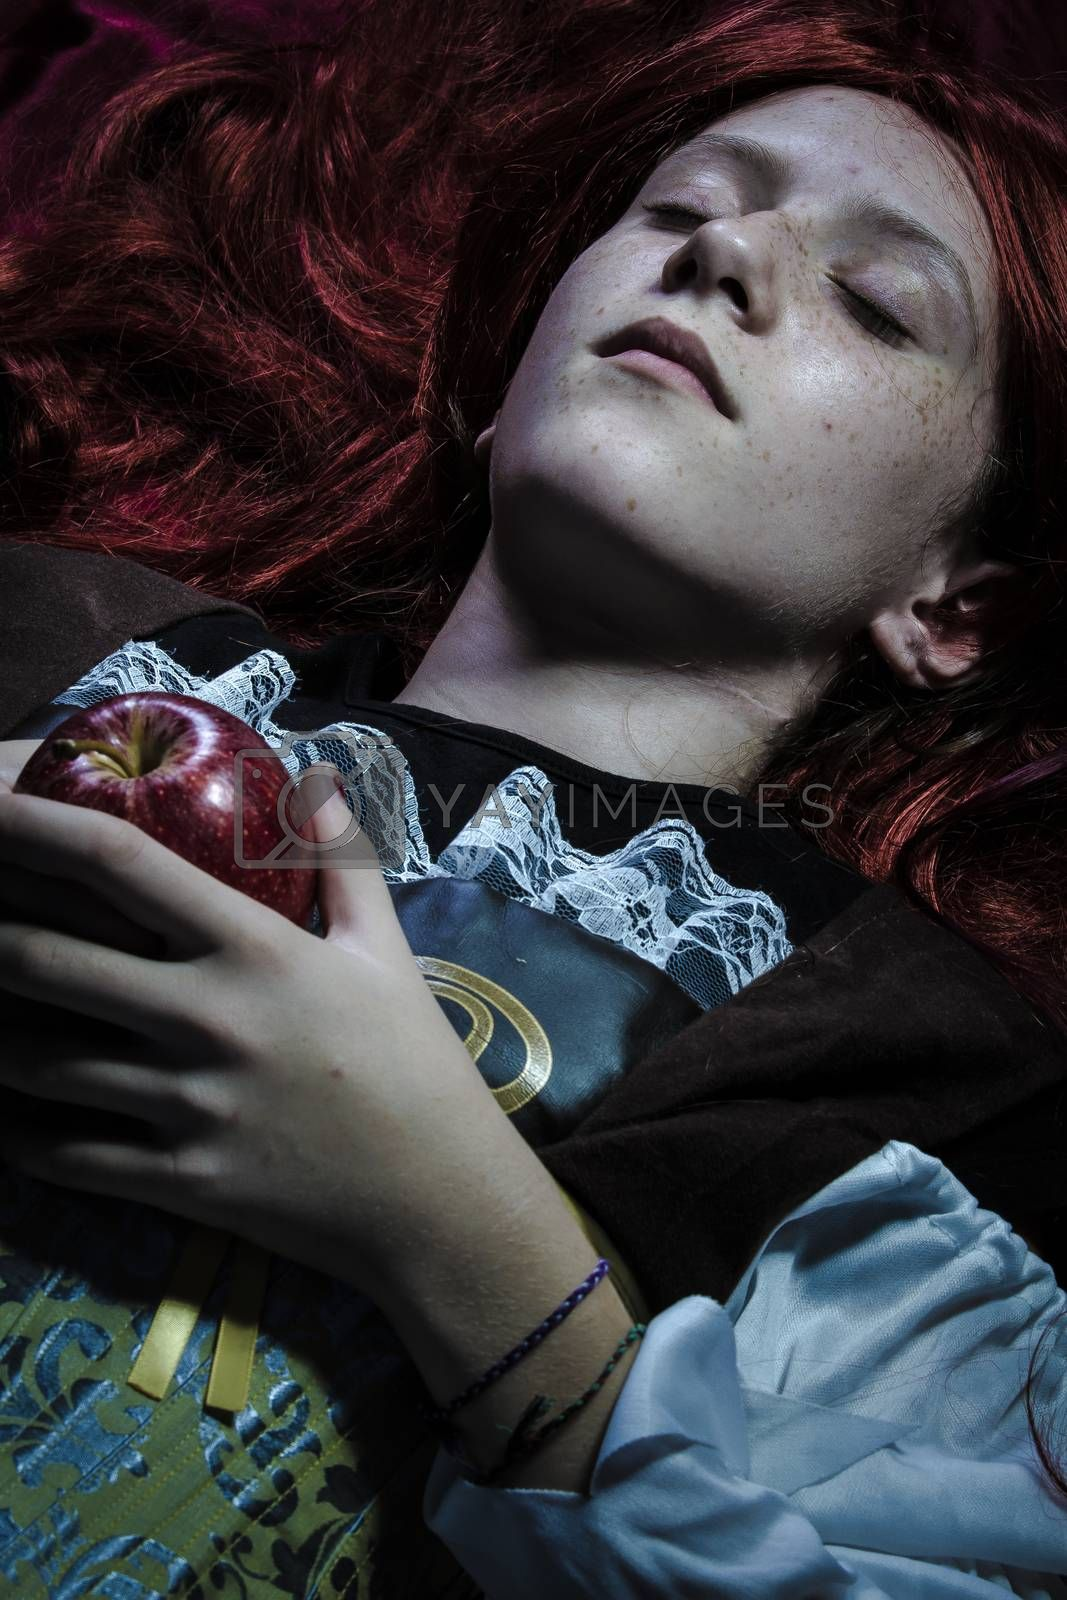 Magic, Teen with a red apple lying, tale scene